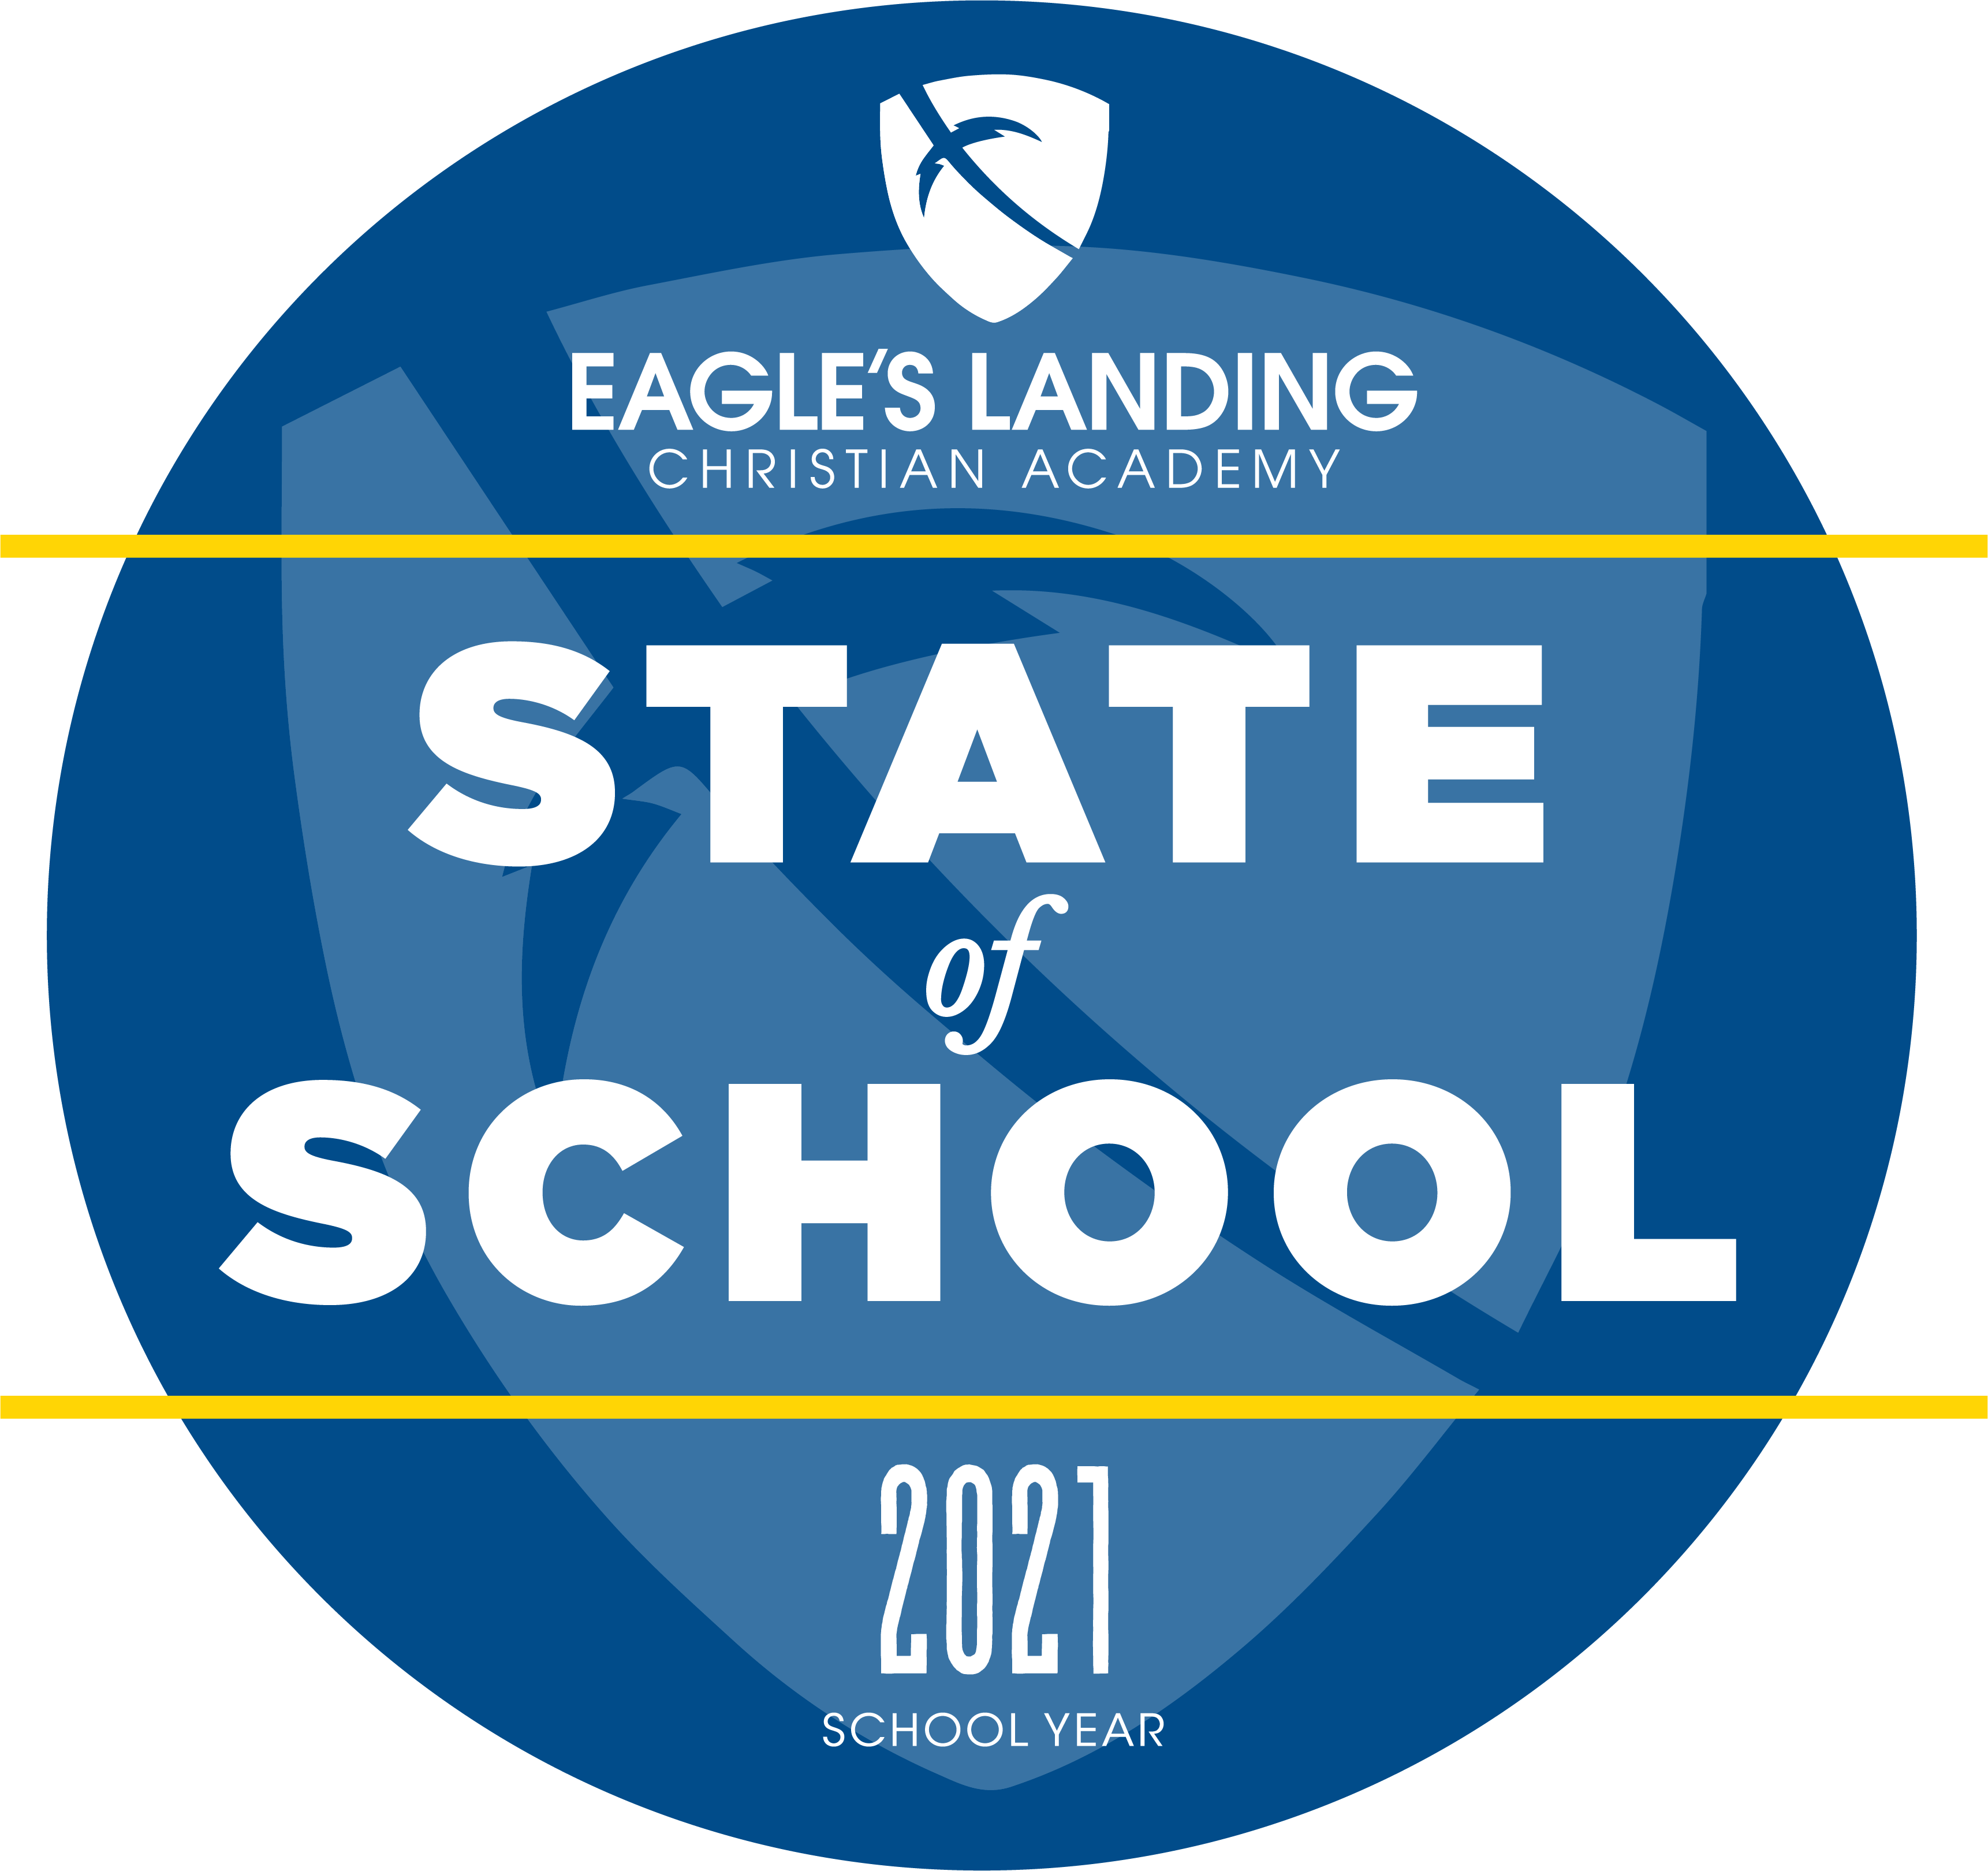 2021 State of School Address Image